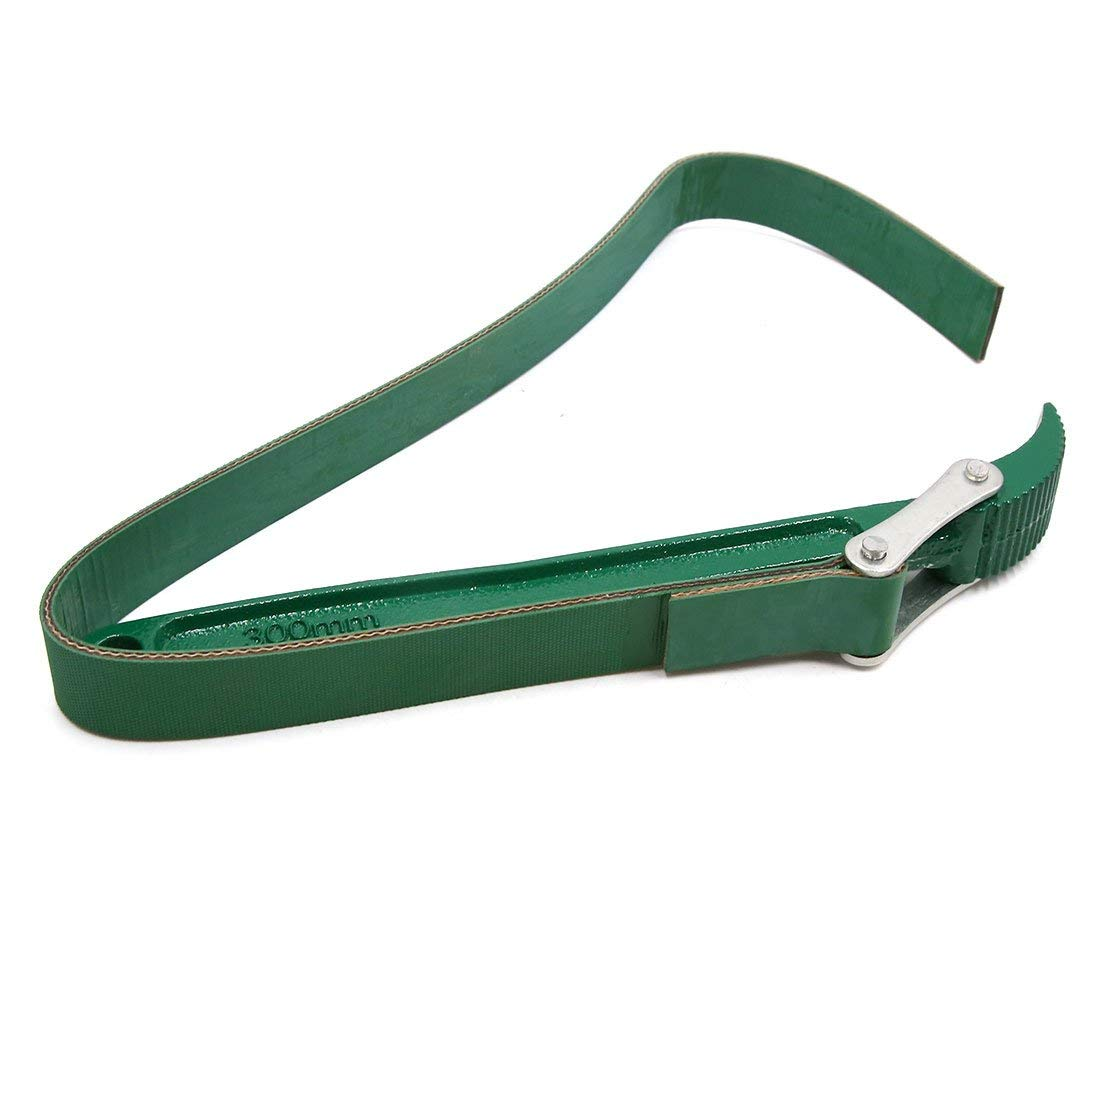 Cheap Lowes Strap Wrench, find Lowes Strap Wrench deals on line at